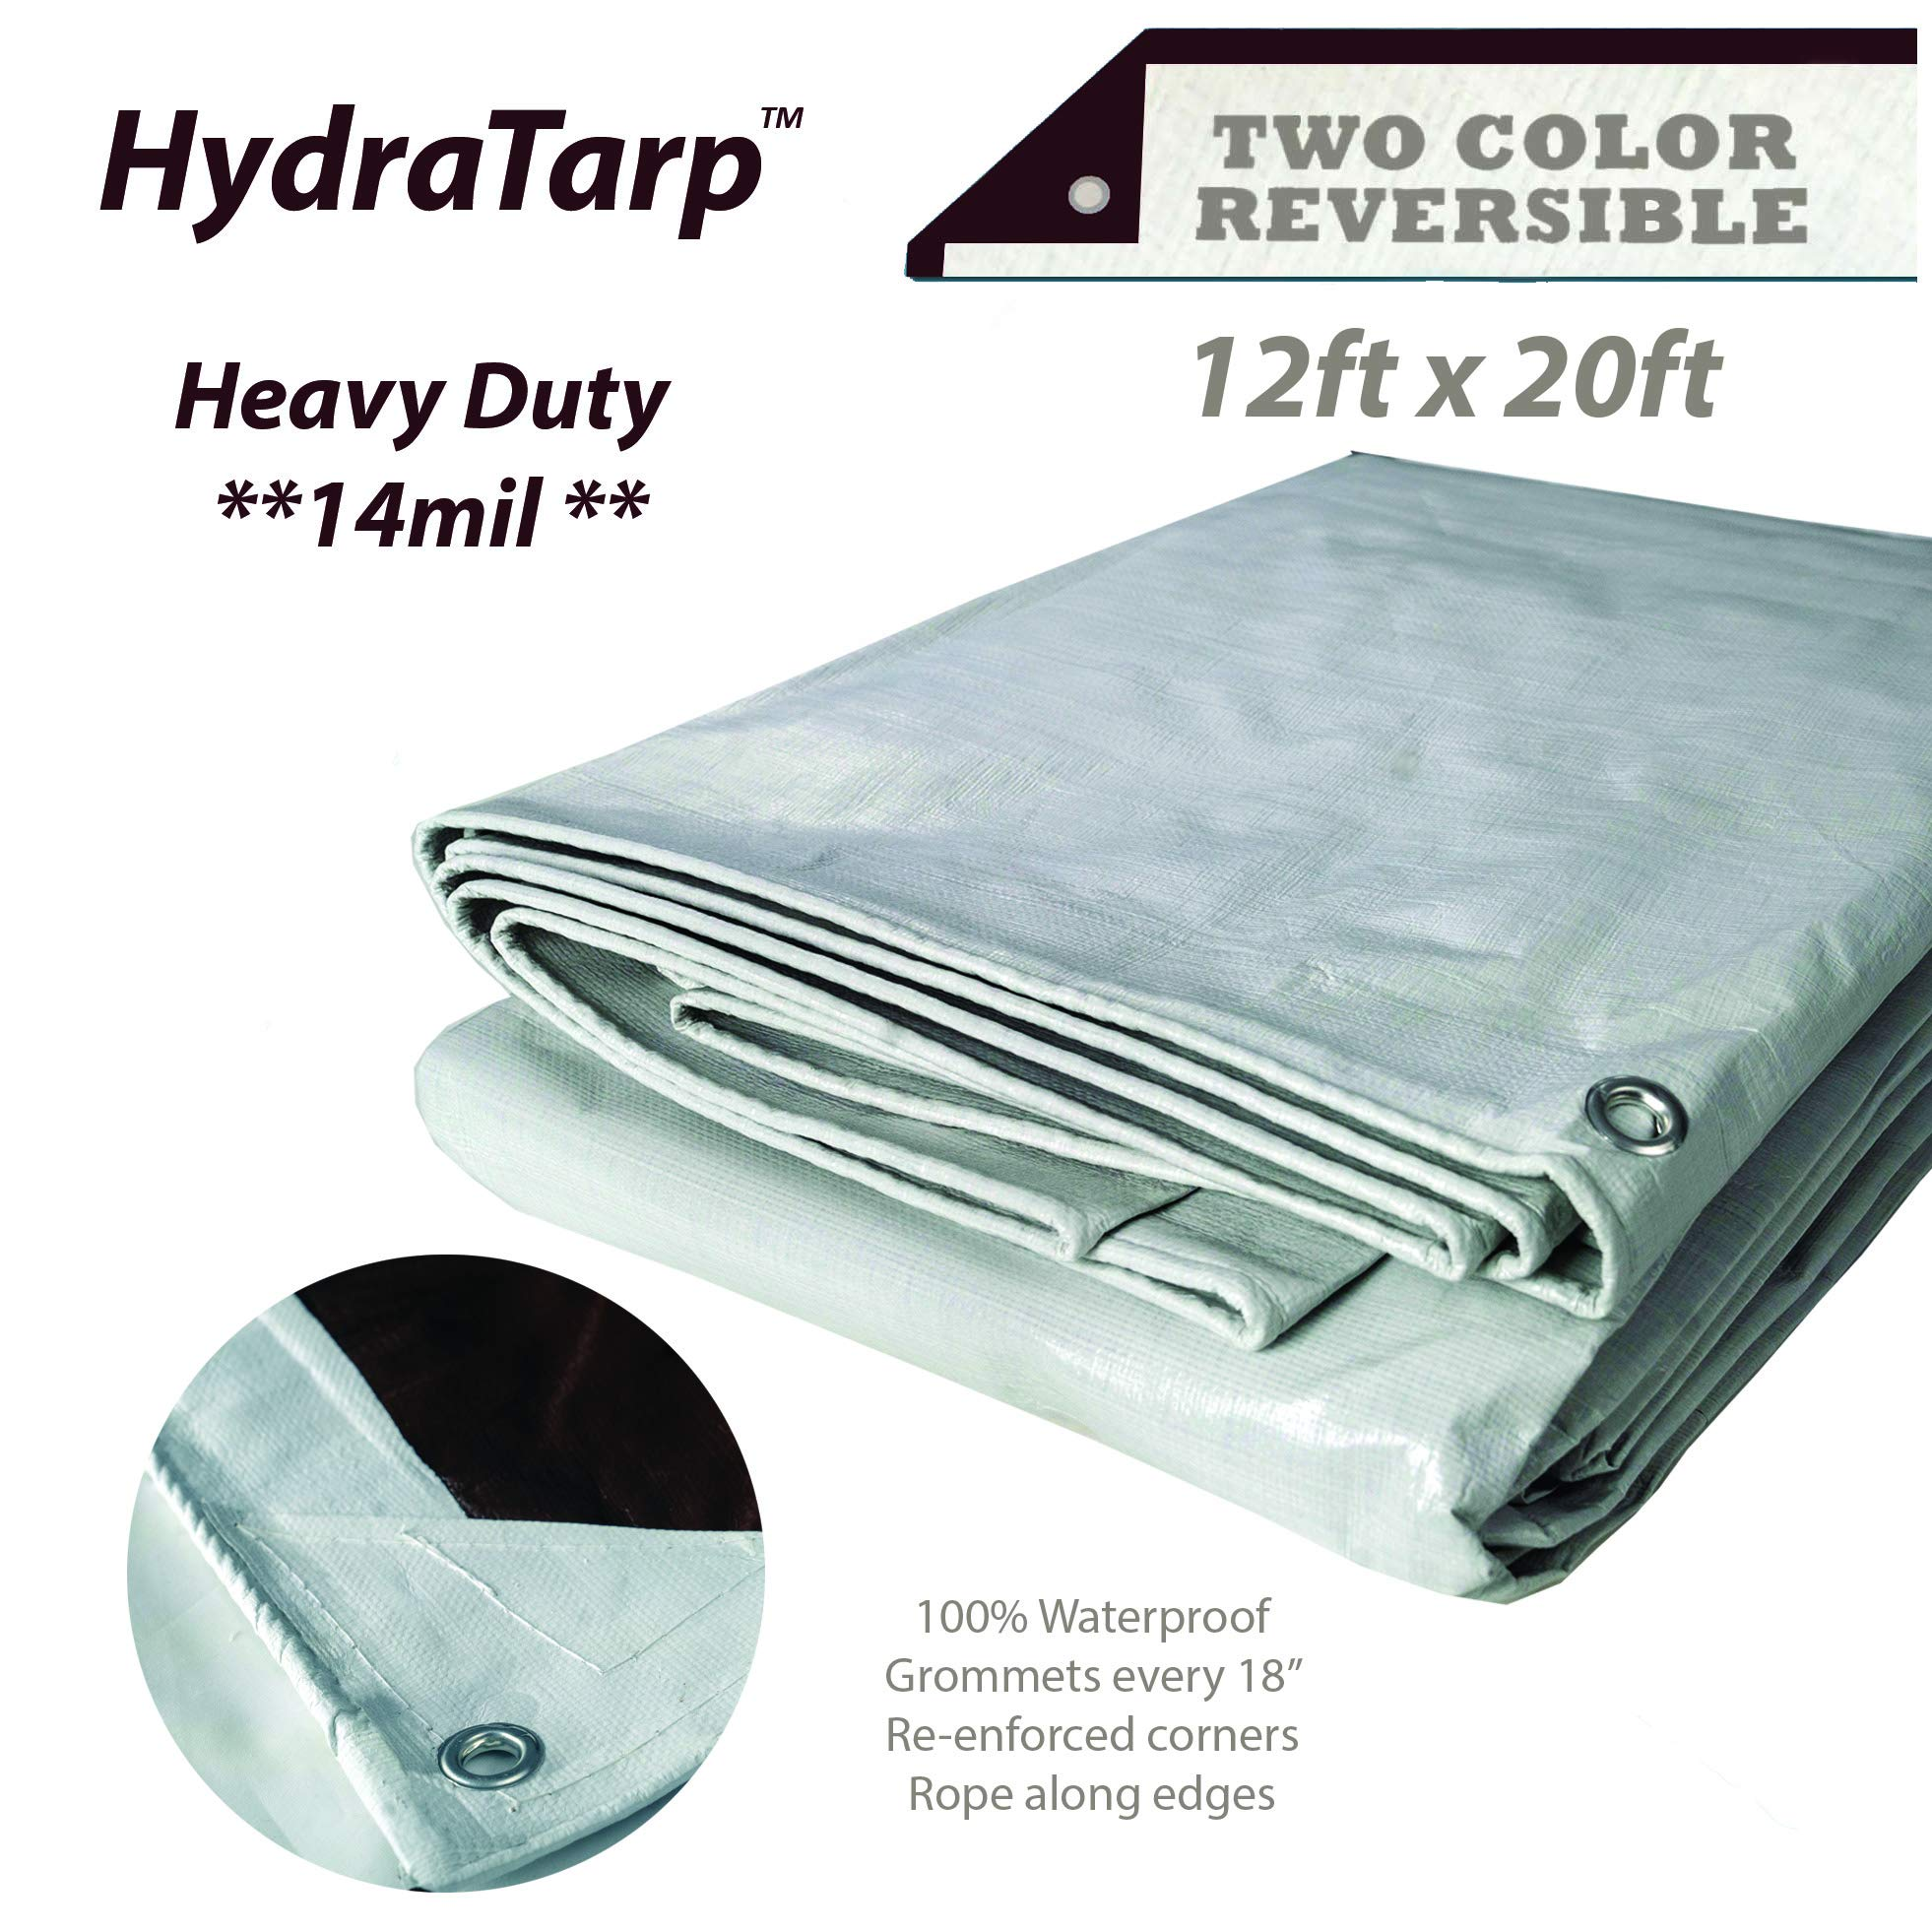 Watershed Innovations HydraTarp 12ft X 20ft Heavy Duty Waterproof Tarp - 14mil Thick - White/Brown Reversible Tarp by Watershed Innovations